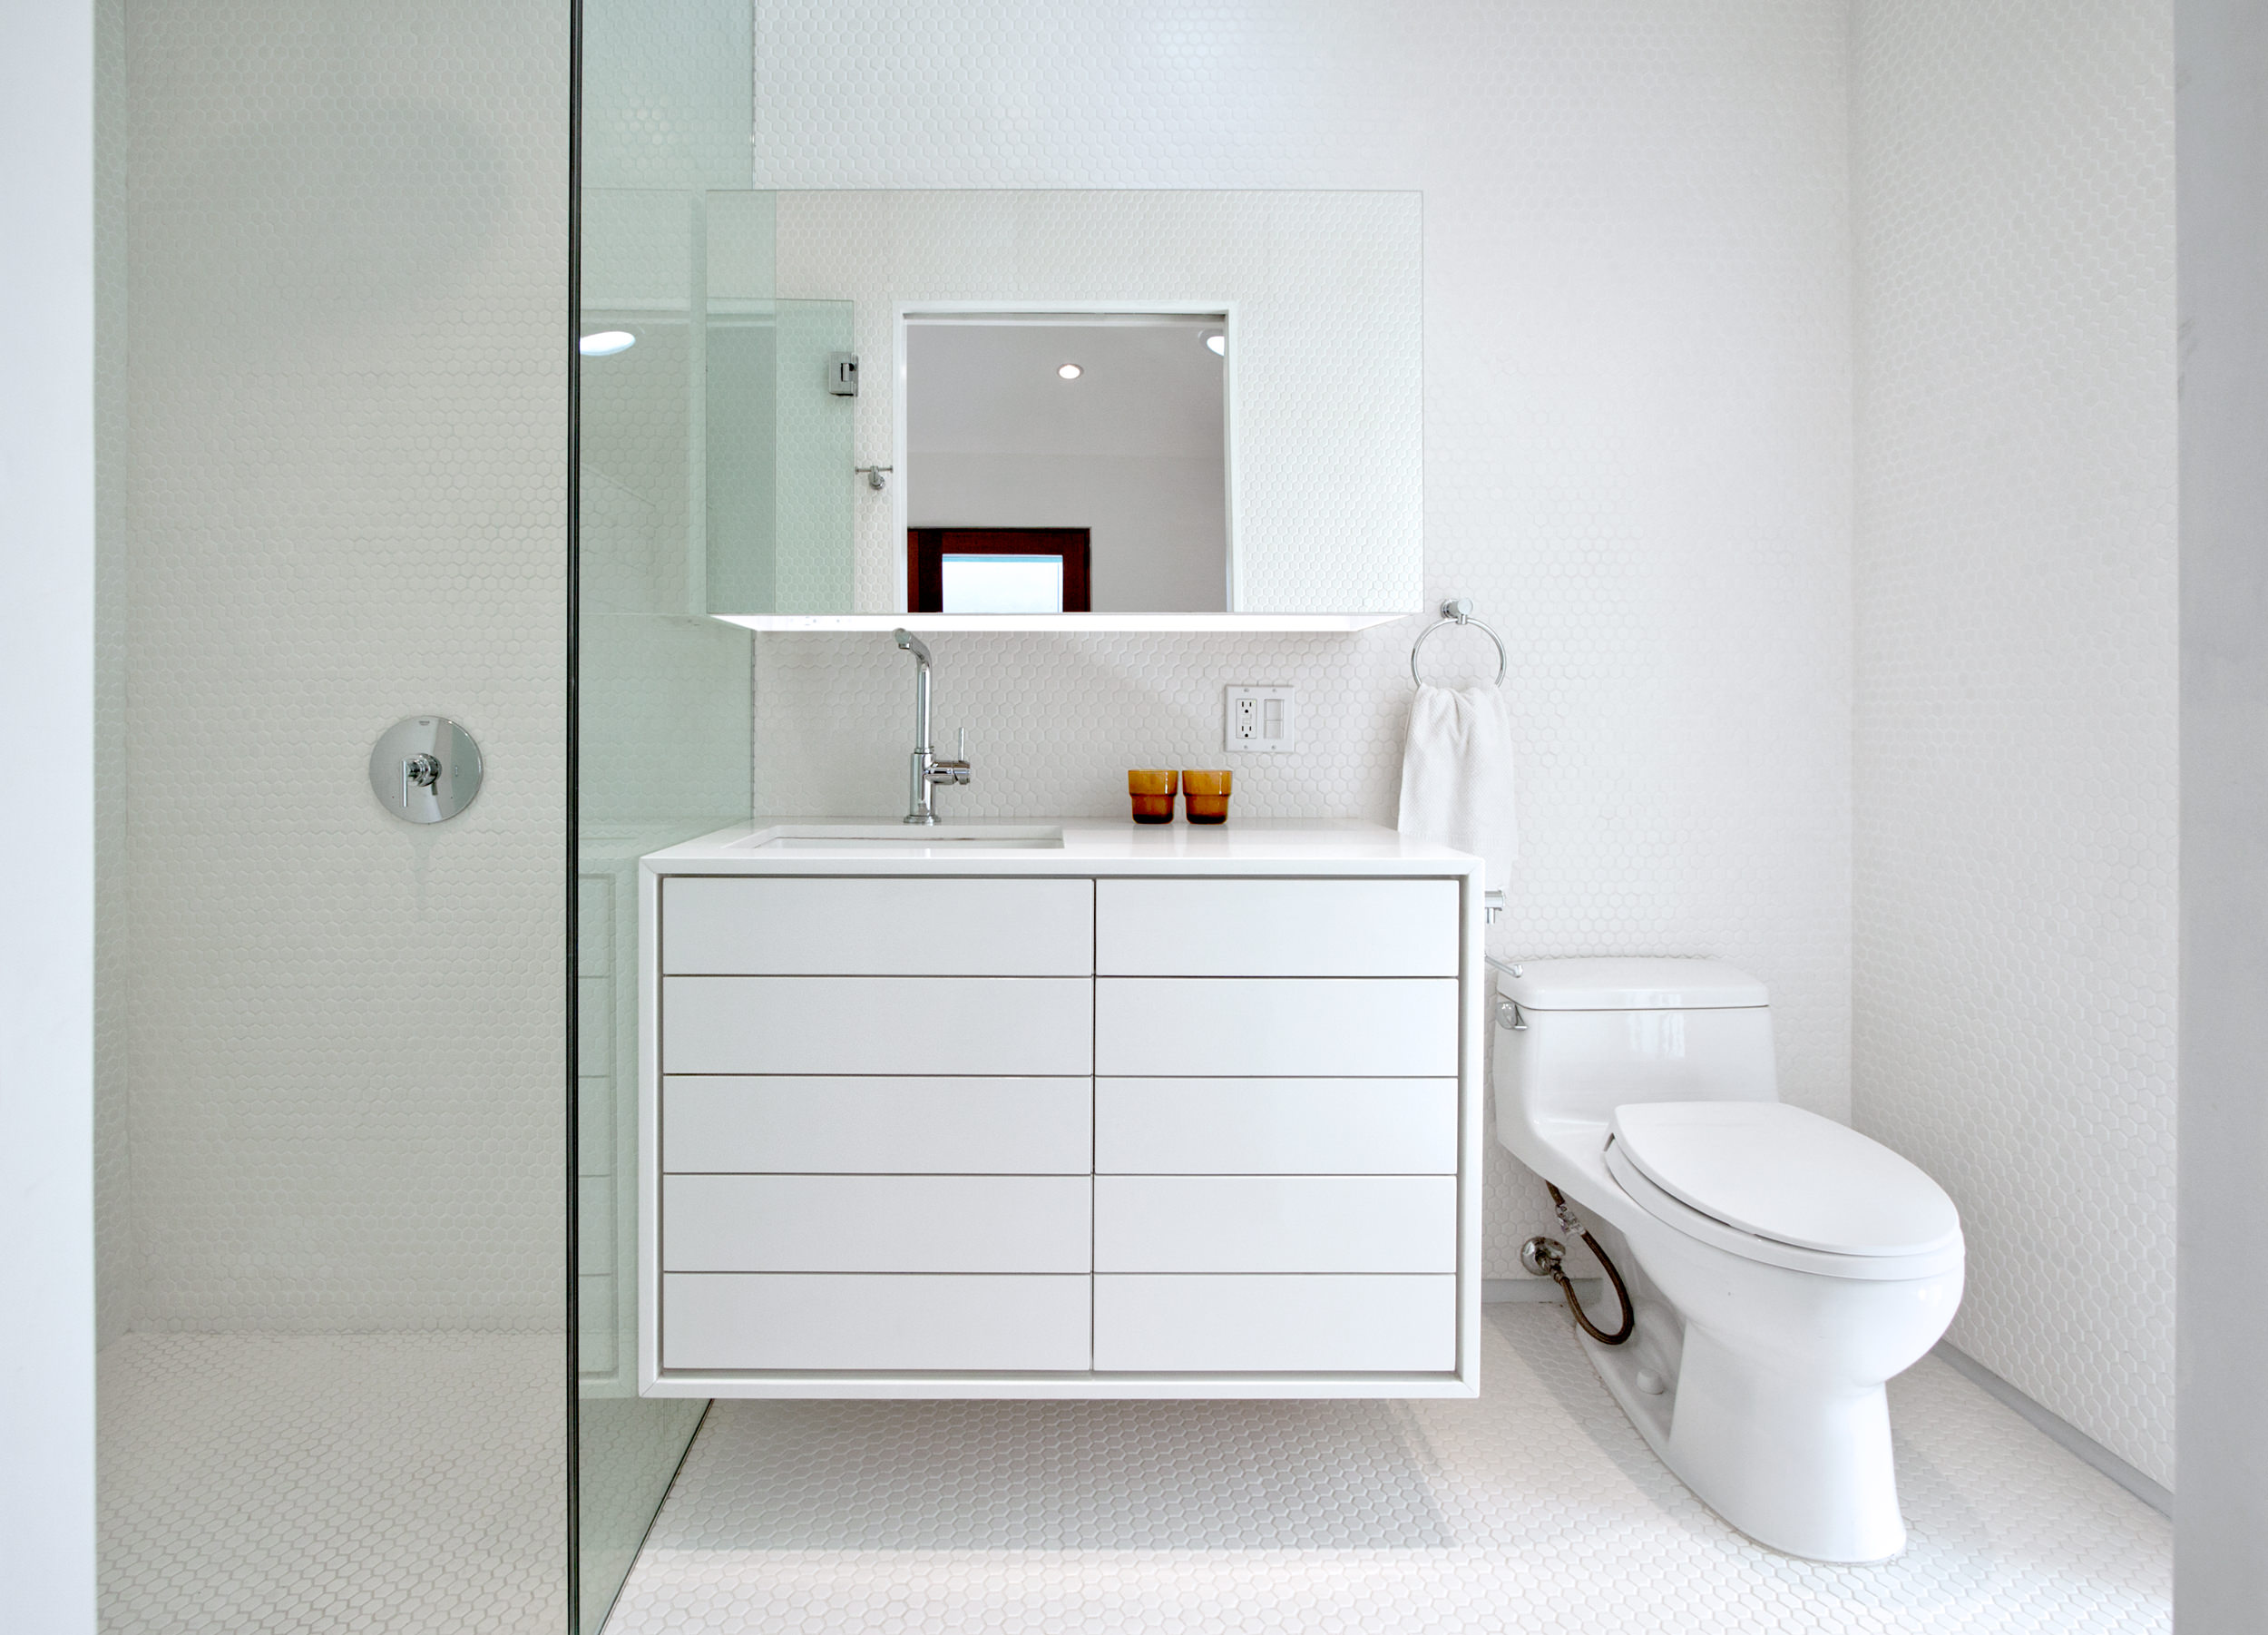 View of the bathroom with the wall-mounted vanity and curbless shower.